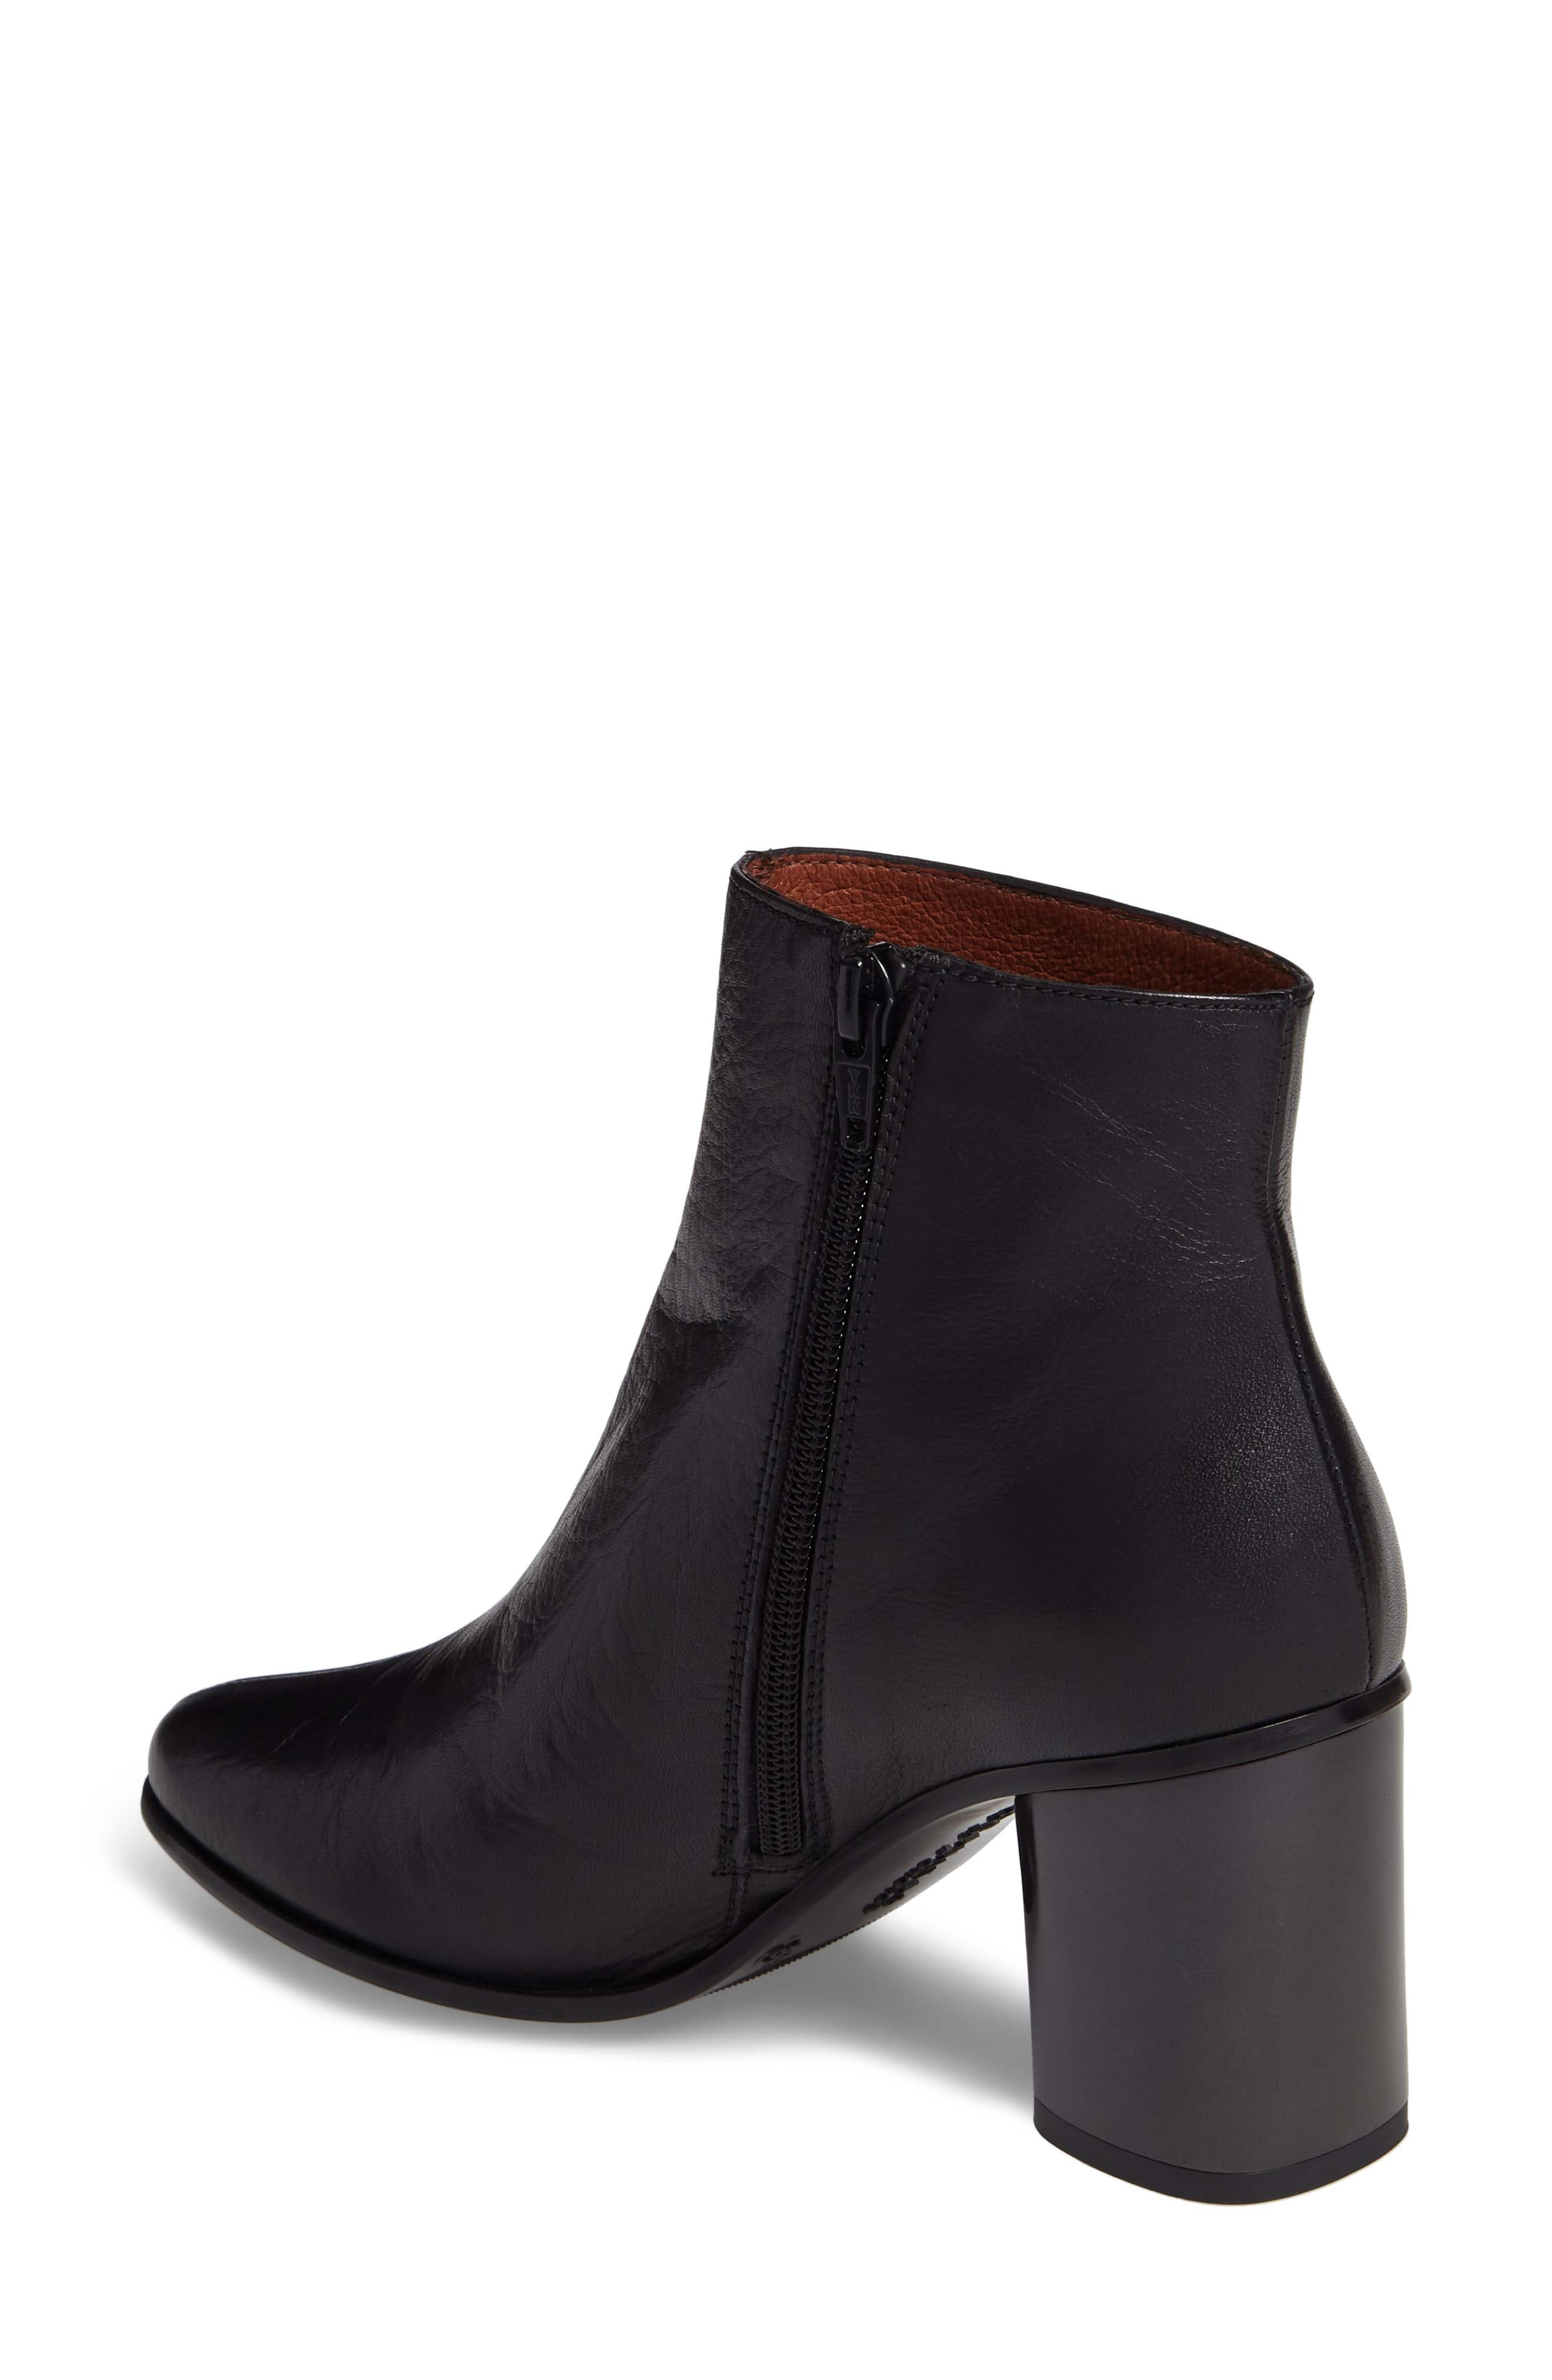 Maralyn Bootie,                             Alternate thumbnail 2, color,                             001